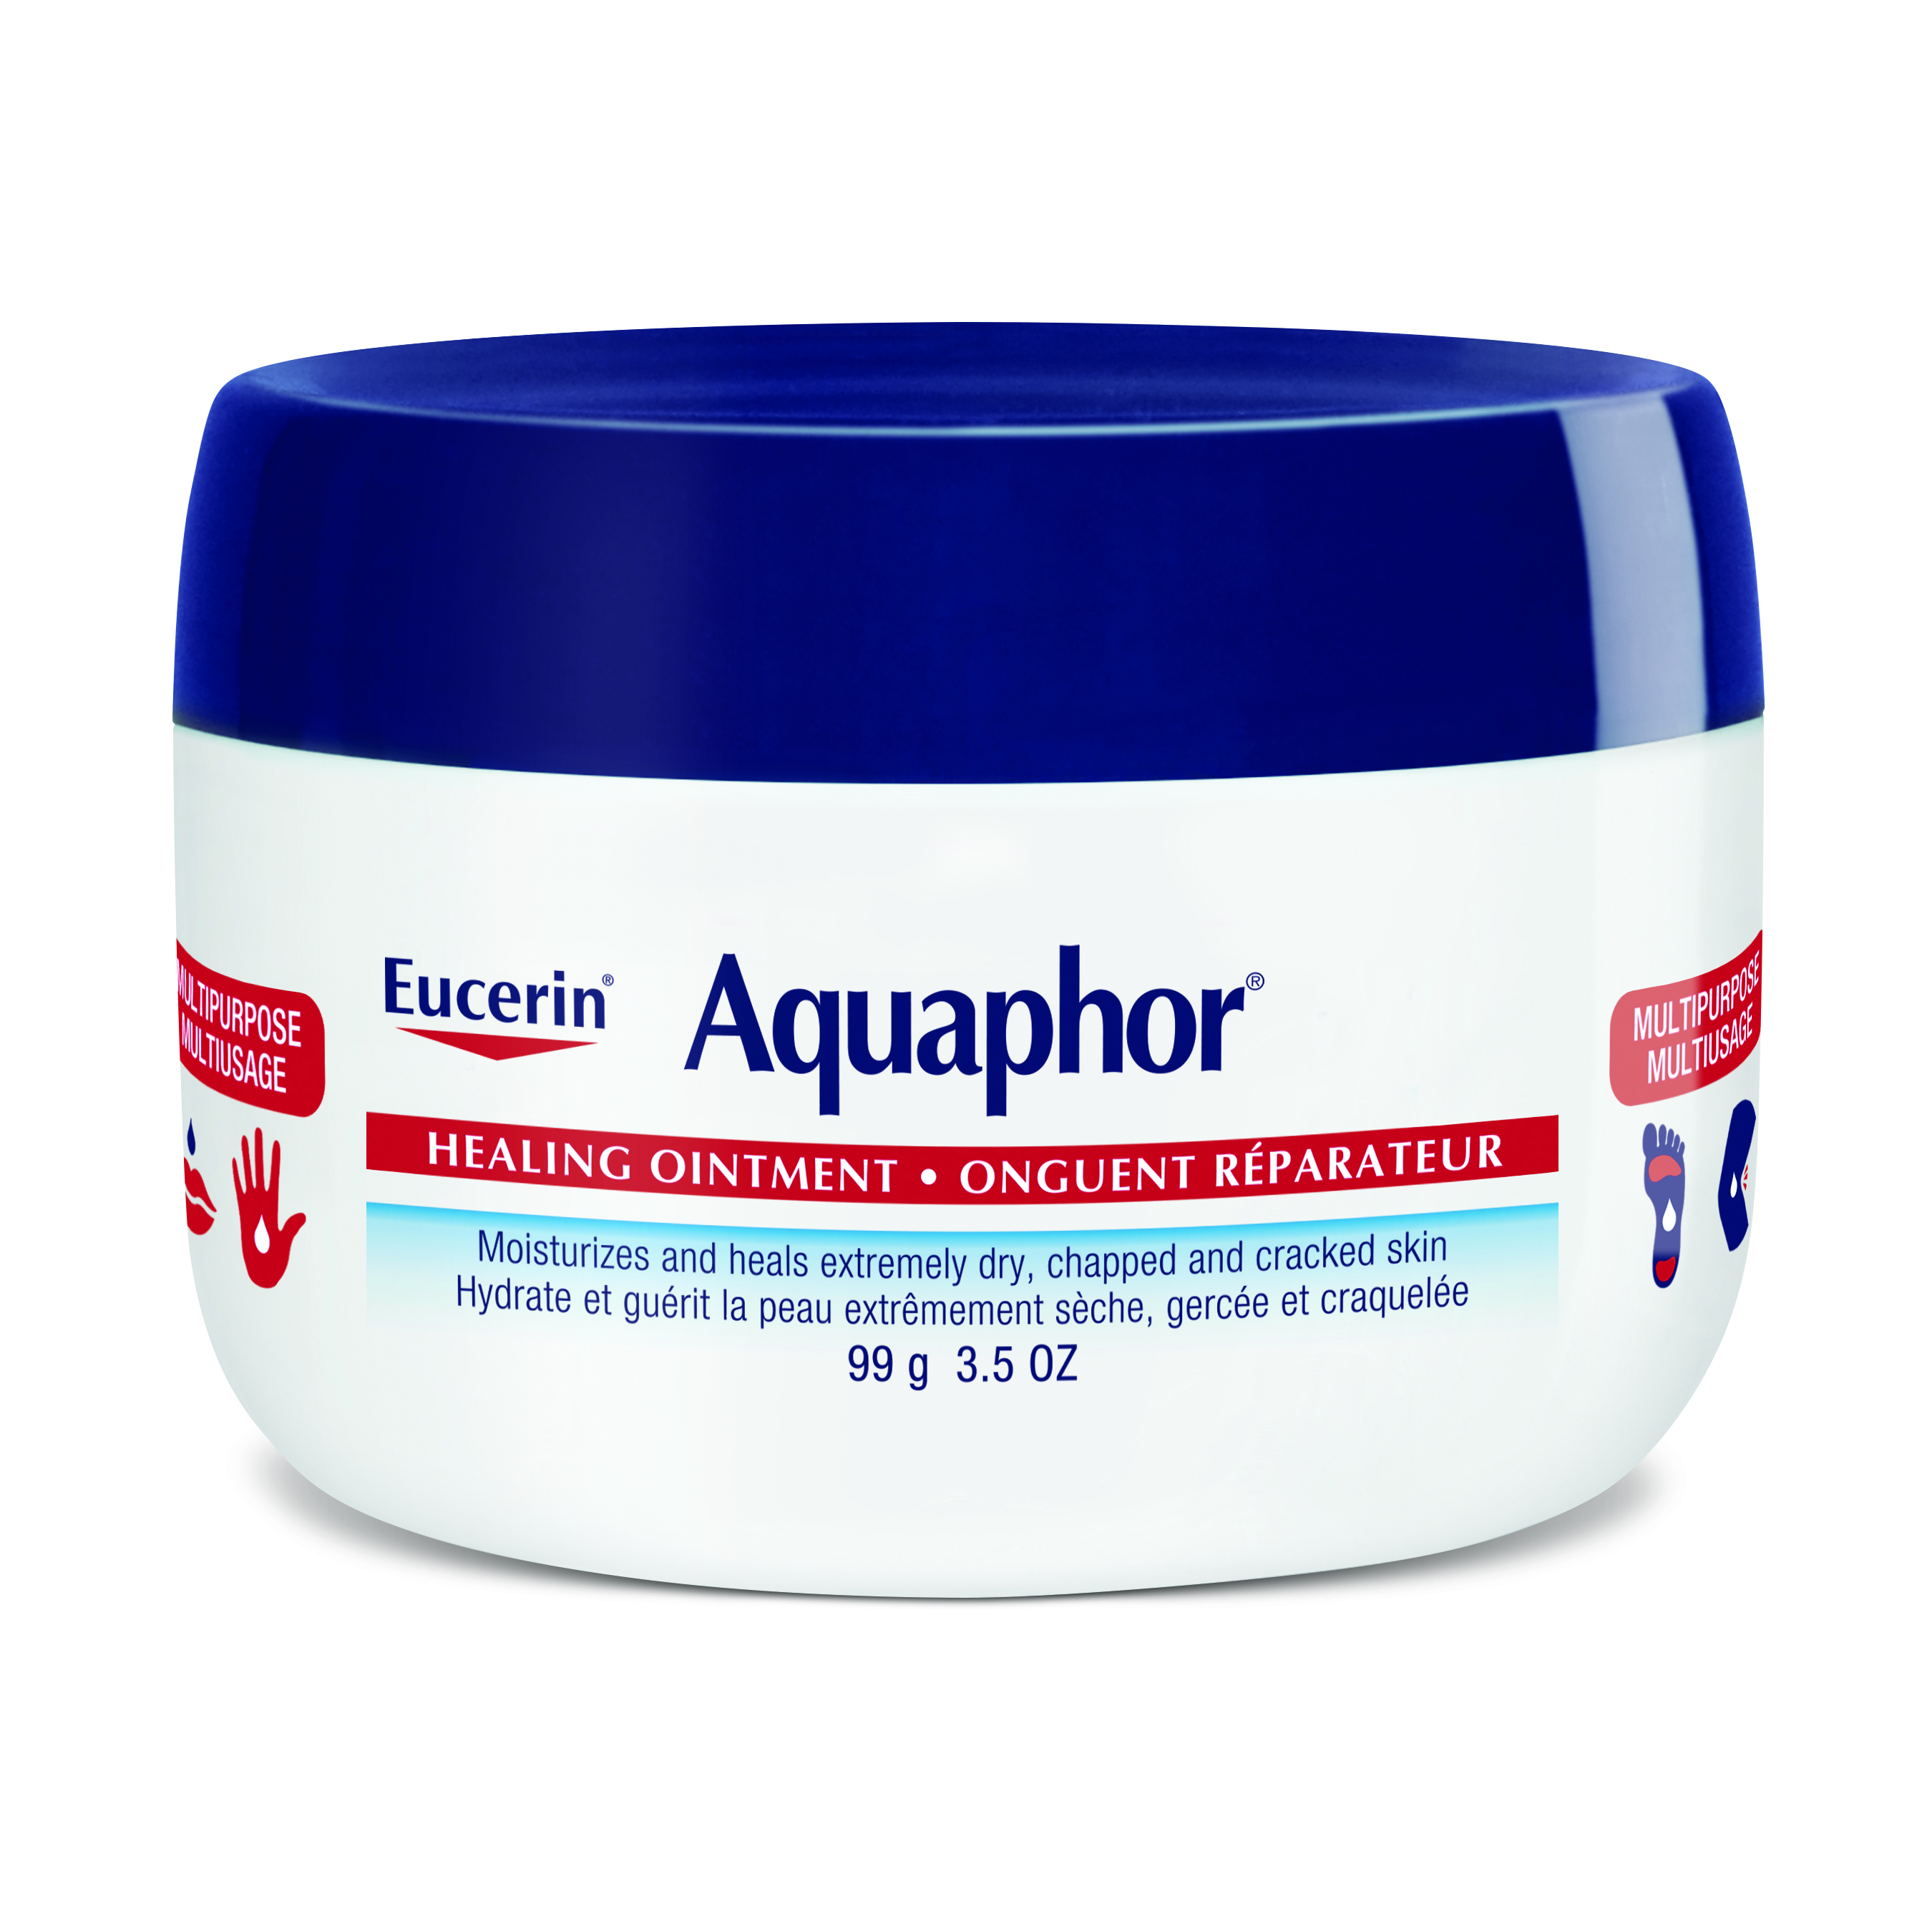 Aquaphor healing ointment on face